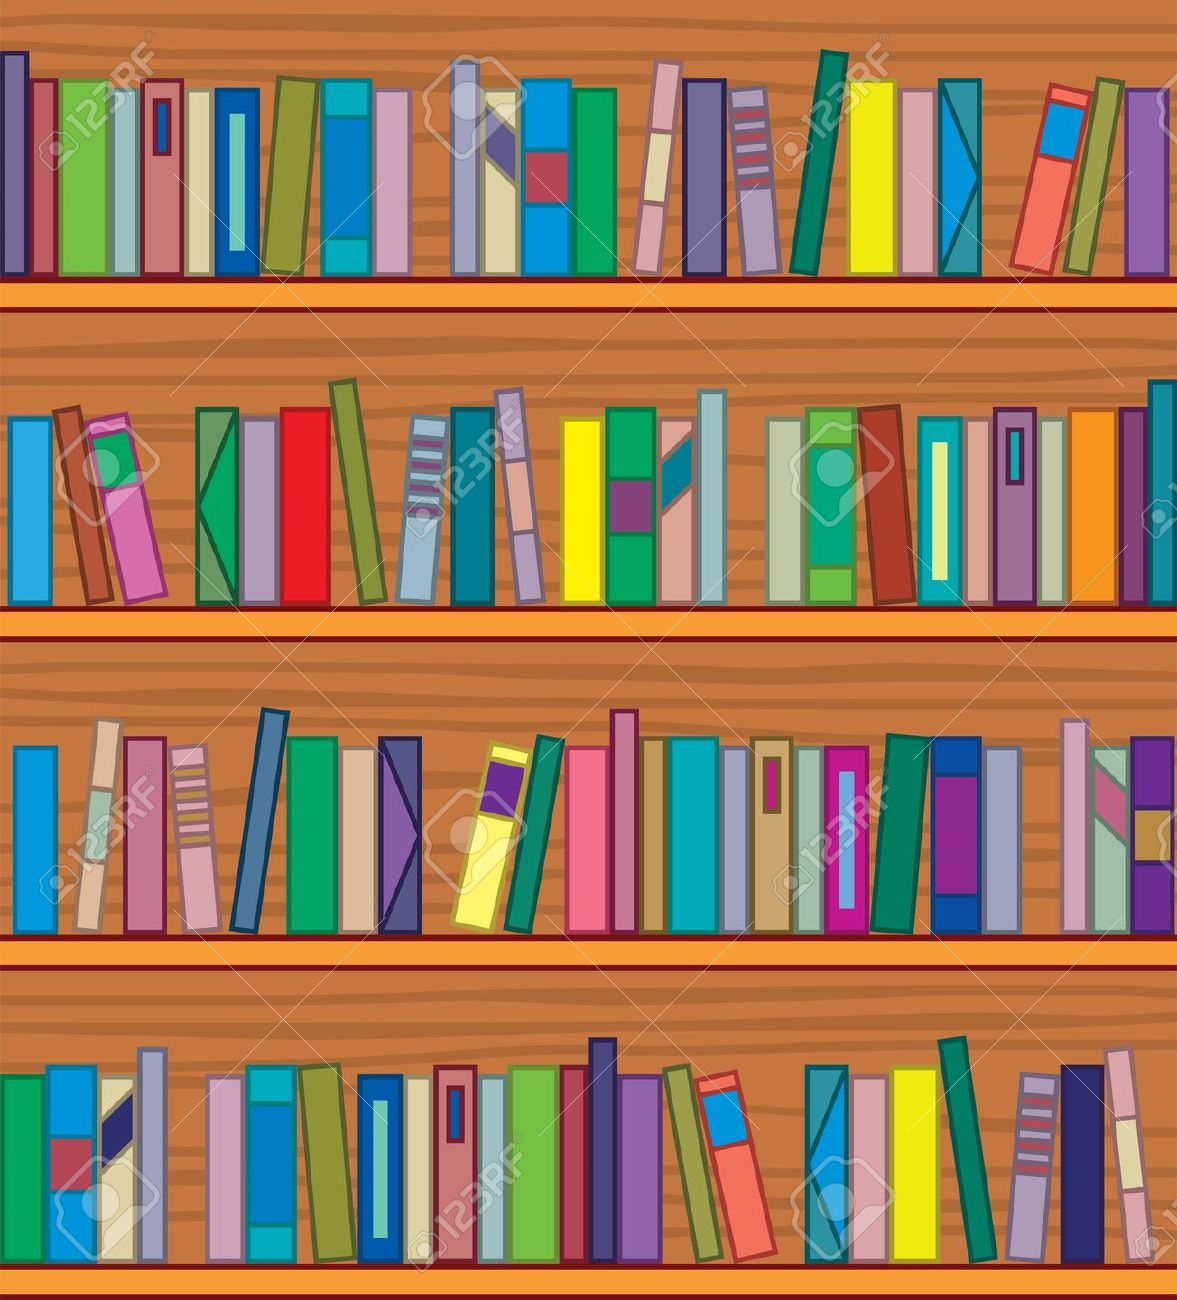 Animated clipart library. Of books in a